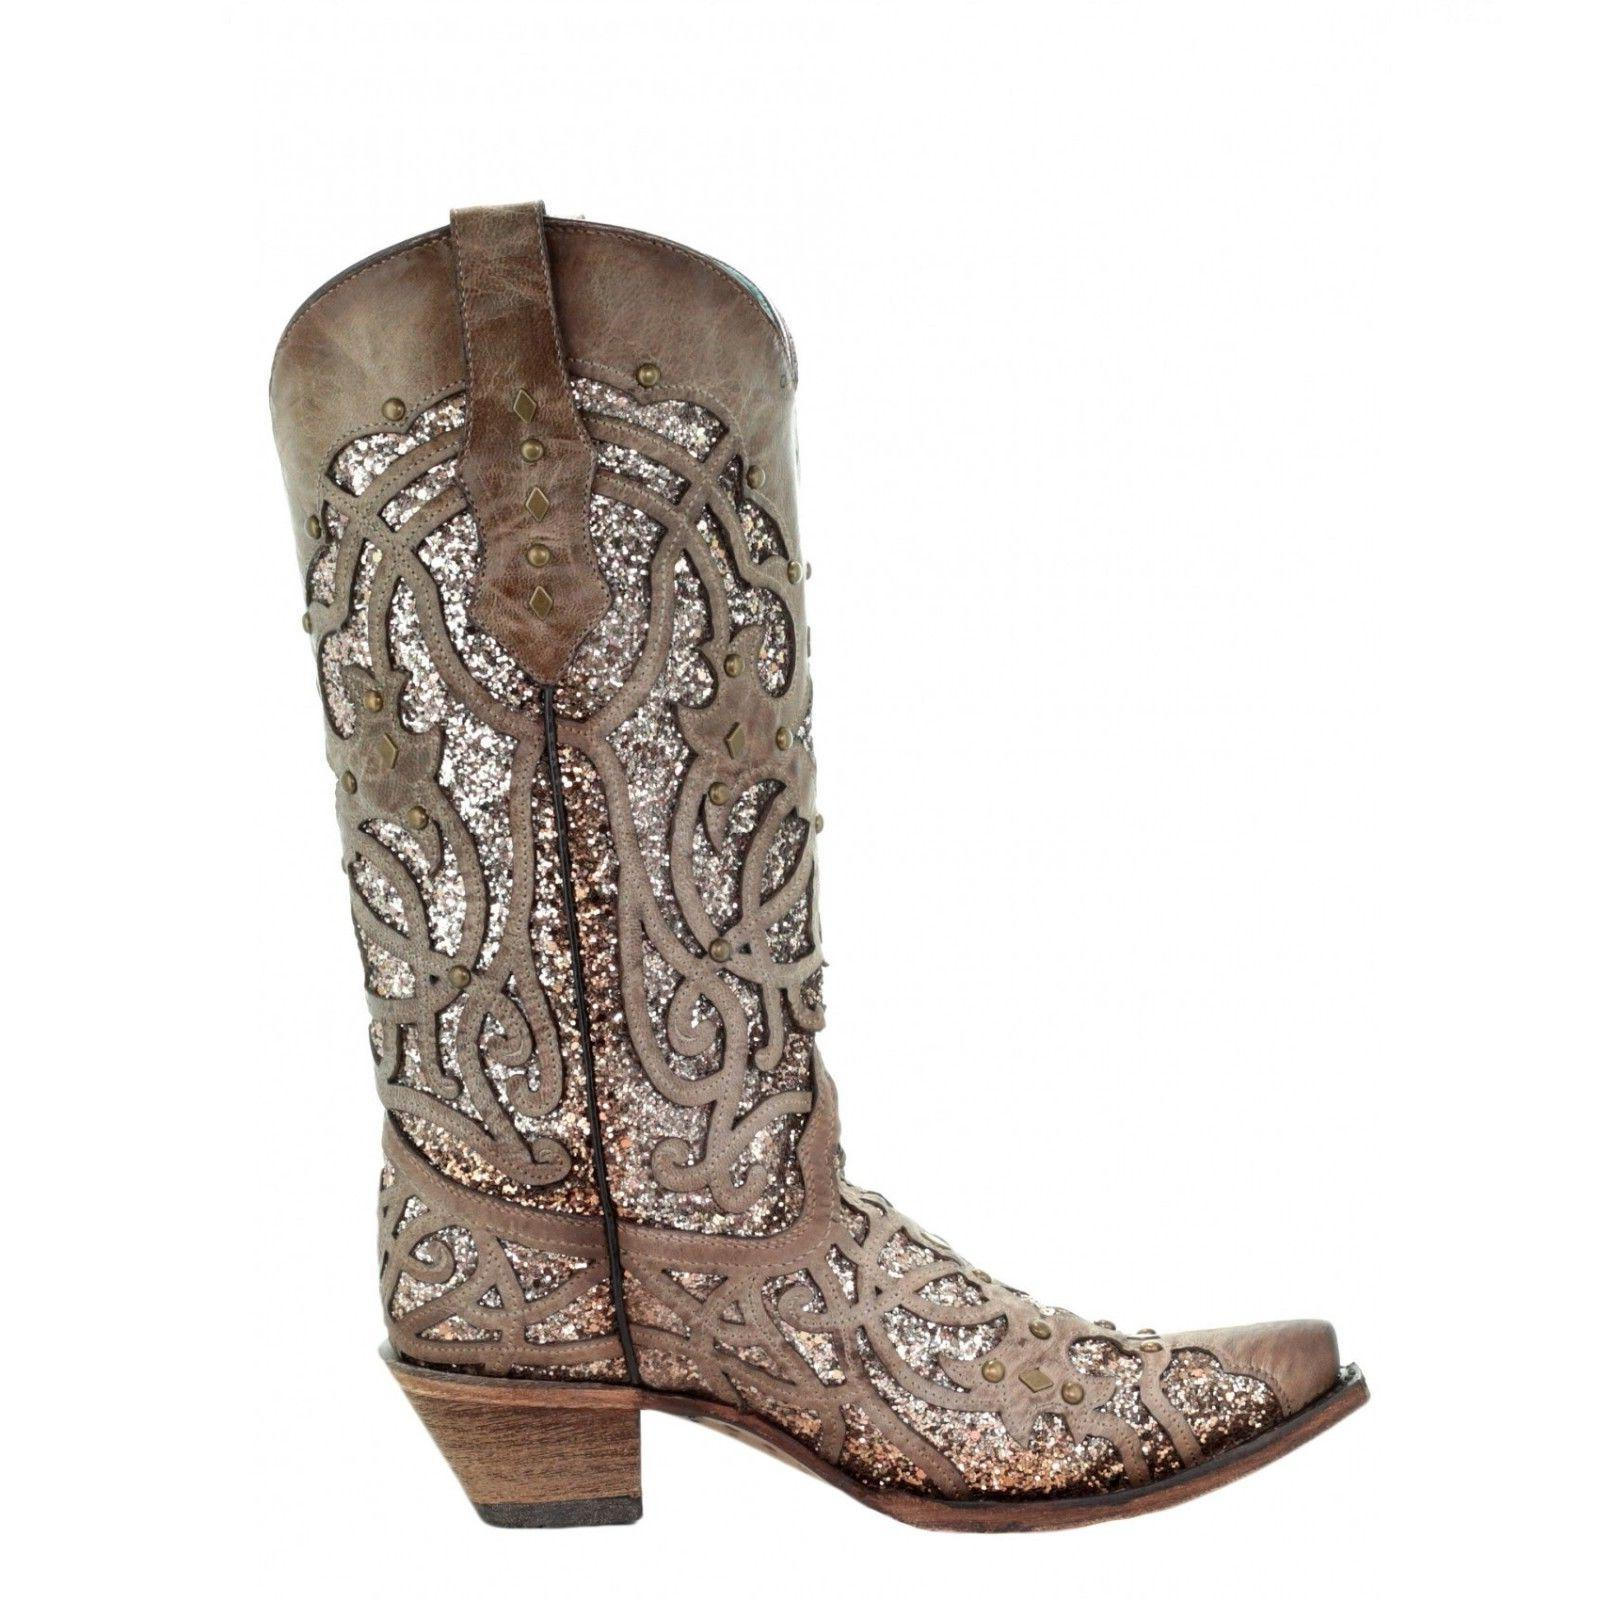 Corral Glitter Inlay Boots